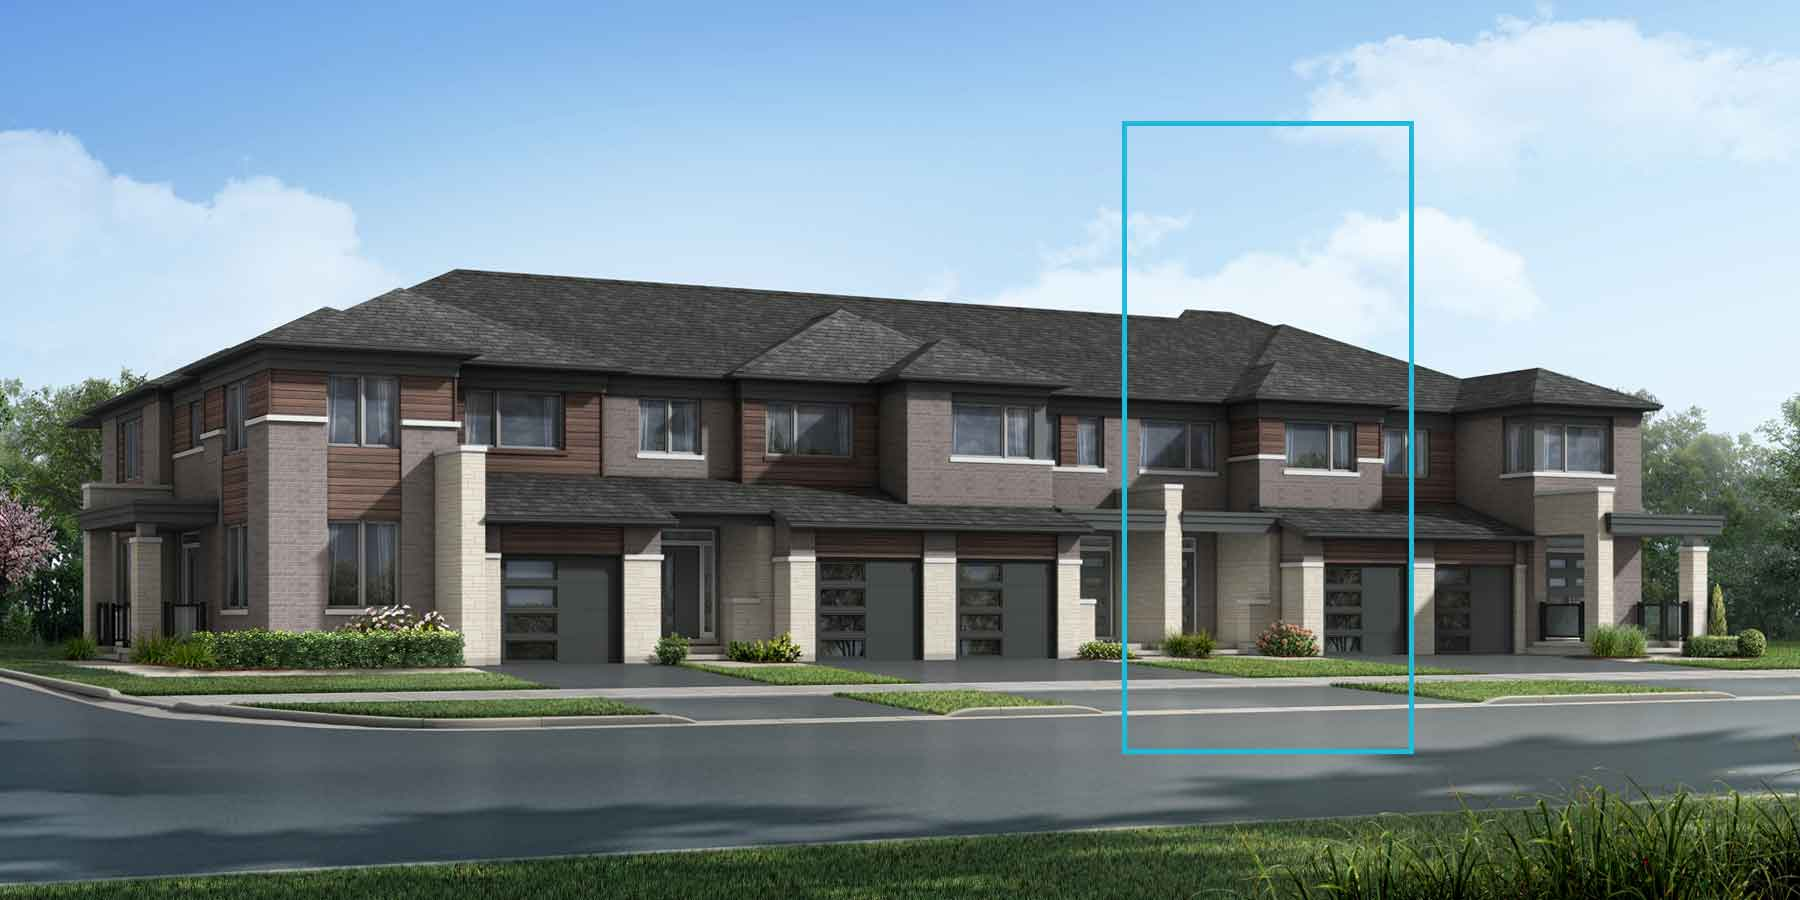 The Princeton Plan elevationtransitional_southestates_princeton_main at Wildflower Crossing in Kitchener Ontario by Mattamy Homes